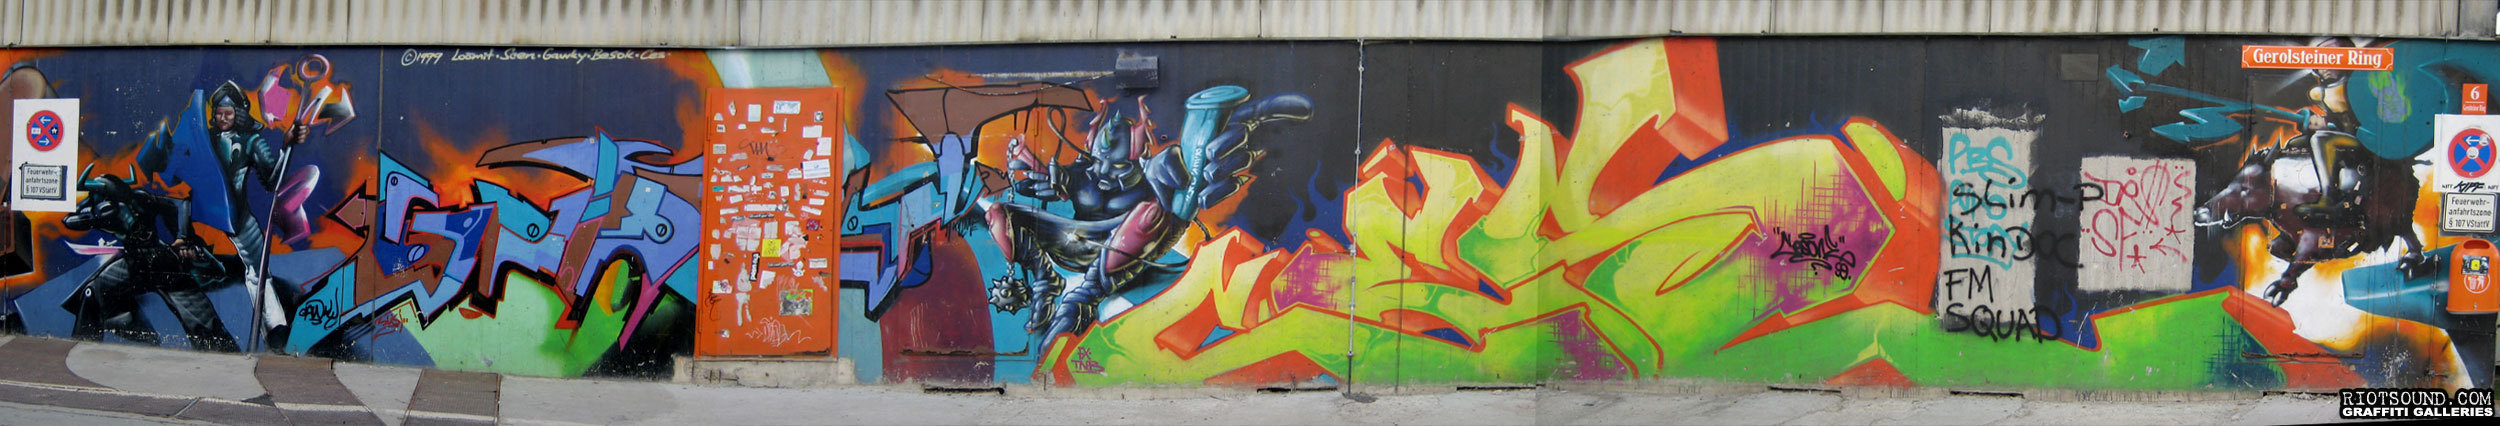 Loomit Graffiti